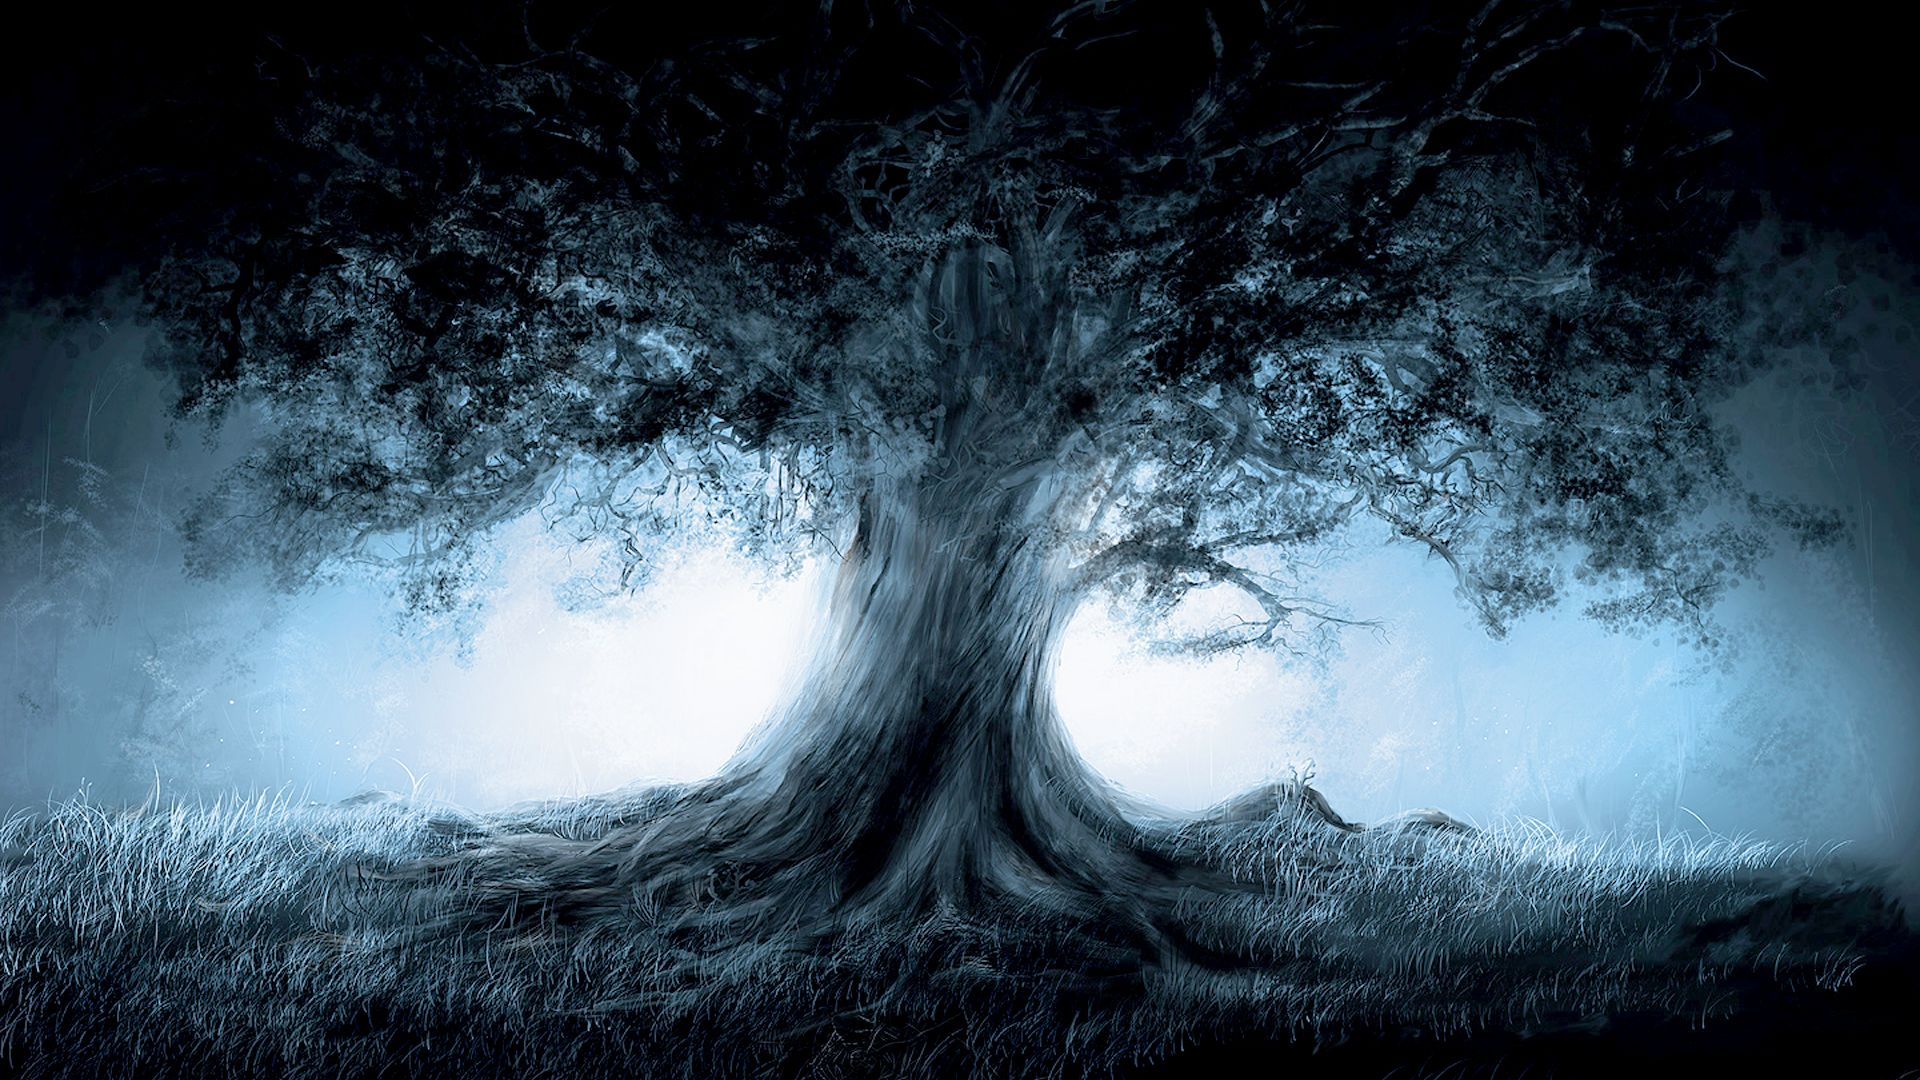 magical art | fantasy magic tree art hd, widescreen wallpaper